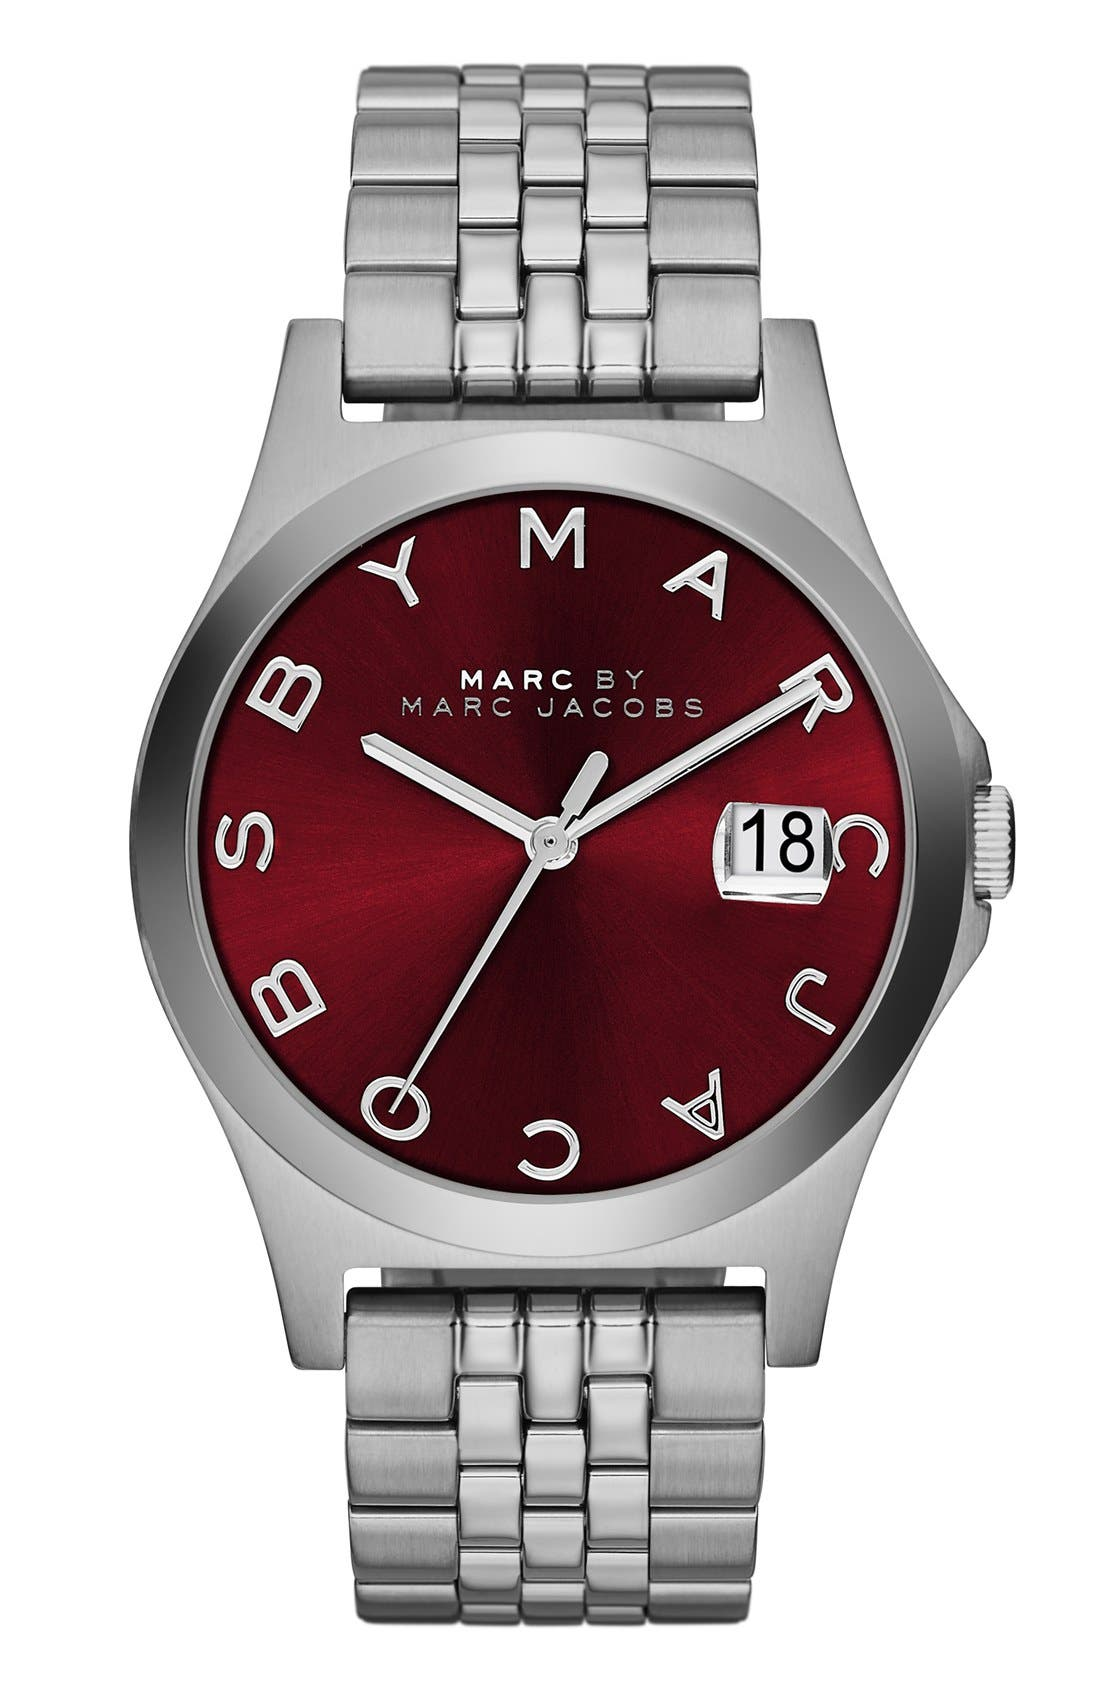 Main Image - MARC JACOBS 'The Slim' Bracelet Watch, 36mm